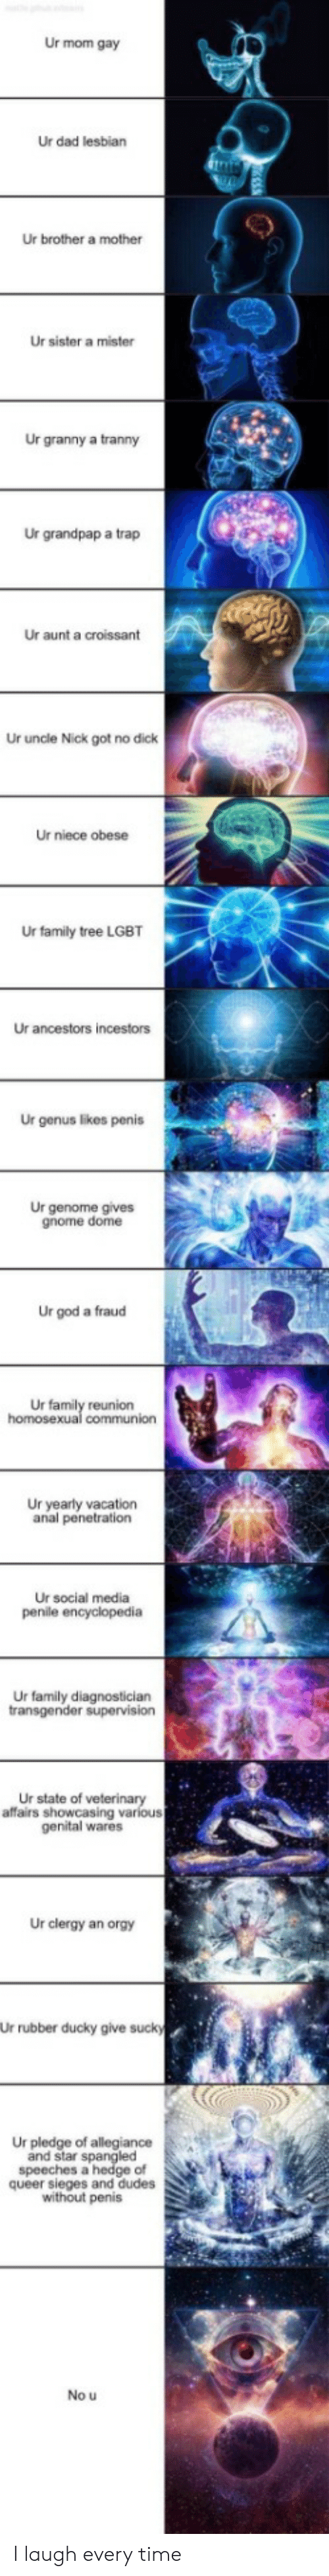 Lesbian: Ur mom gay  Ur dad lesbian  Ur brother a mother  Ur sister a mister  Ur granny a tranny  Ur grandpap a trap  Ur aunt a croissant  Ur uncle Nick got no dick  Ur niece obese  Ur family tree LGBT  Ur ancestors incestors  Ur genus likes penis  Ur genome gives  gnome dome  Ur god a fraud  Ur family reunion  homosexual communion  Ur yearly vacation  anal penetration  Ur social media  penile encyclopedia  Ur family diagnostician  transgender supervision  Ur state of veterinary  affairs showcasing various  genital wares  Ur clergy an orgy  Ur rubber ducky give sucky  Ur pledge of allegiance  and star spangled  speeches a hedge of  queer sieges and dudes  without penis  No u I laugh every time